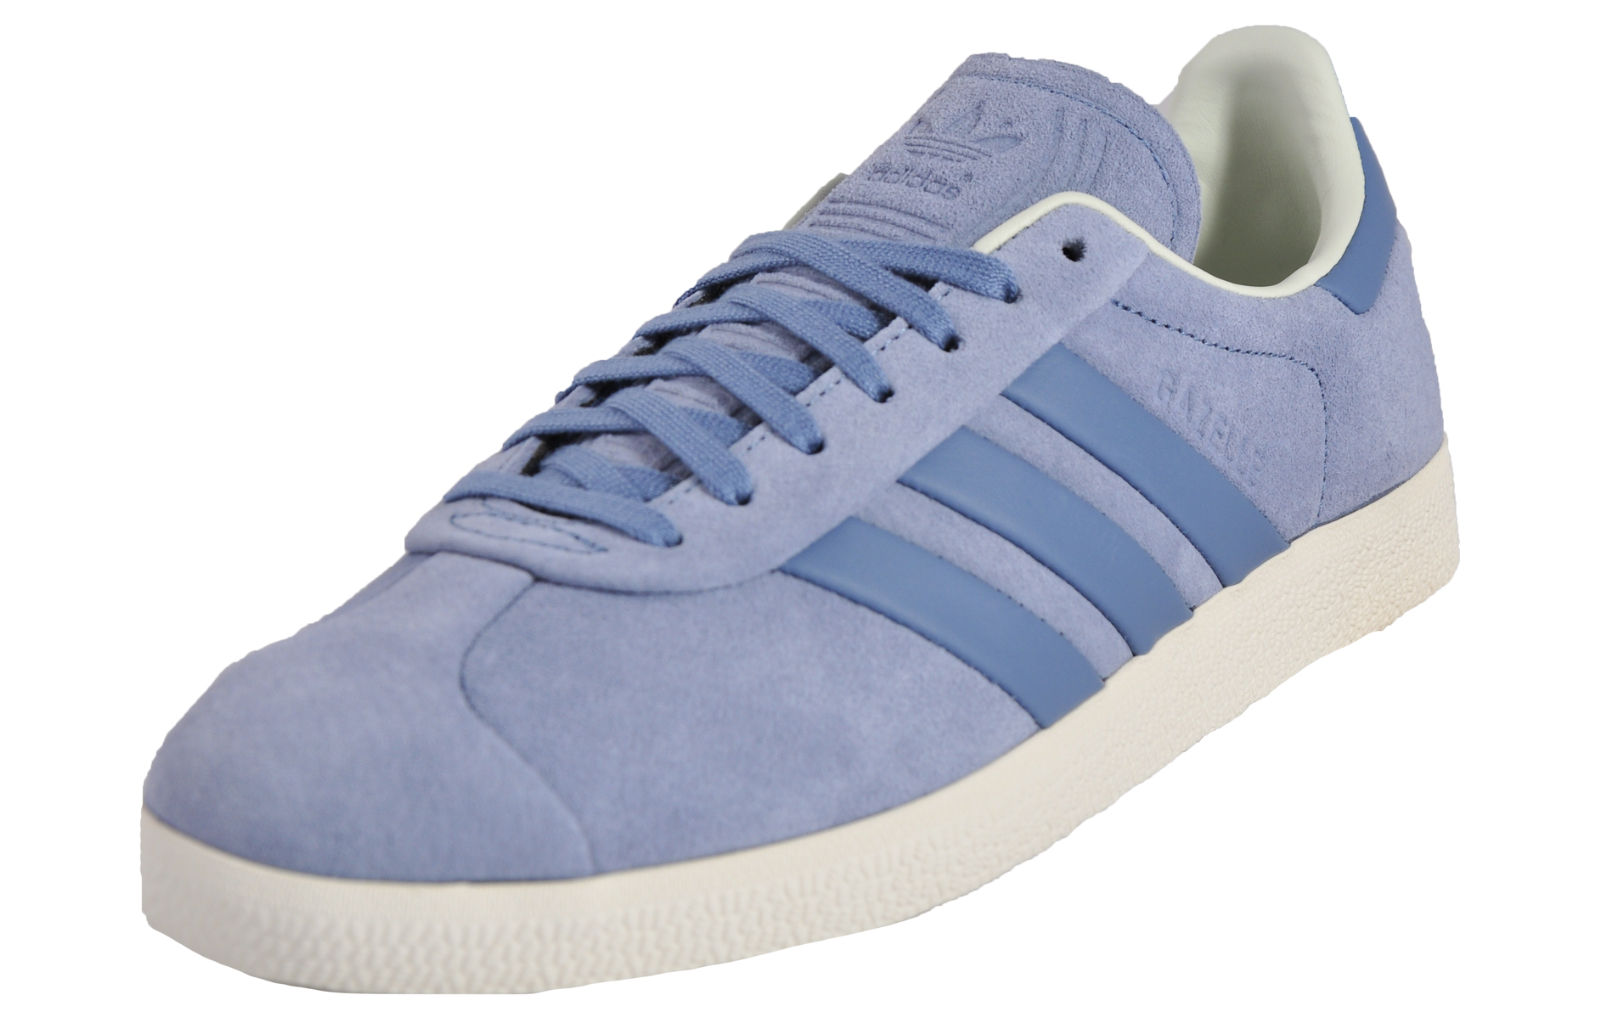 Adidas Originals Gazelle Stitch & Turn Unisex  - AD186528